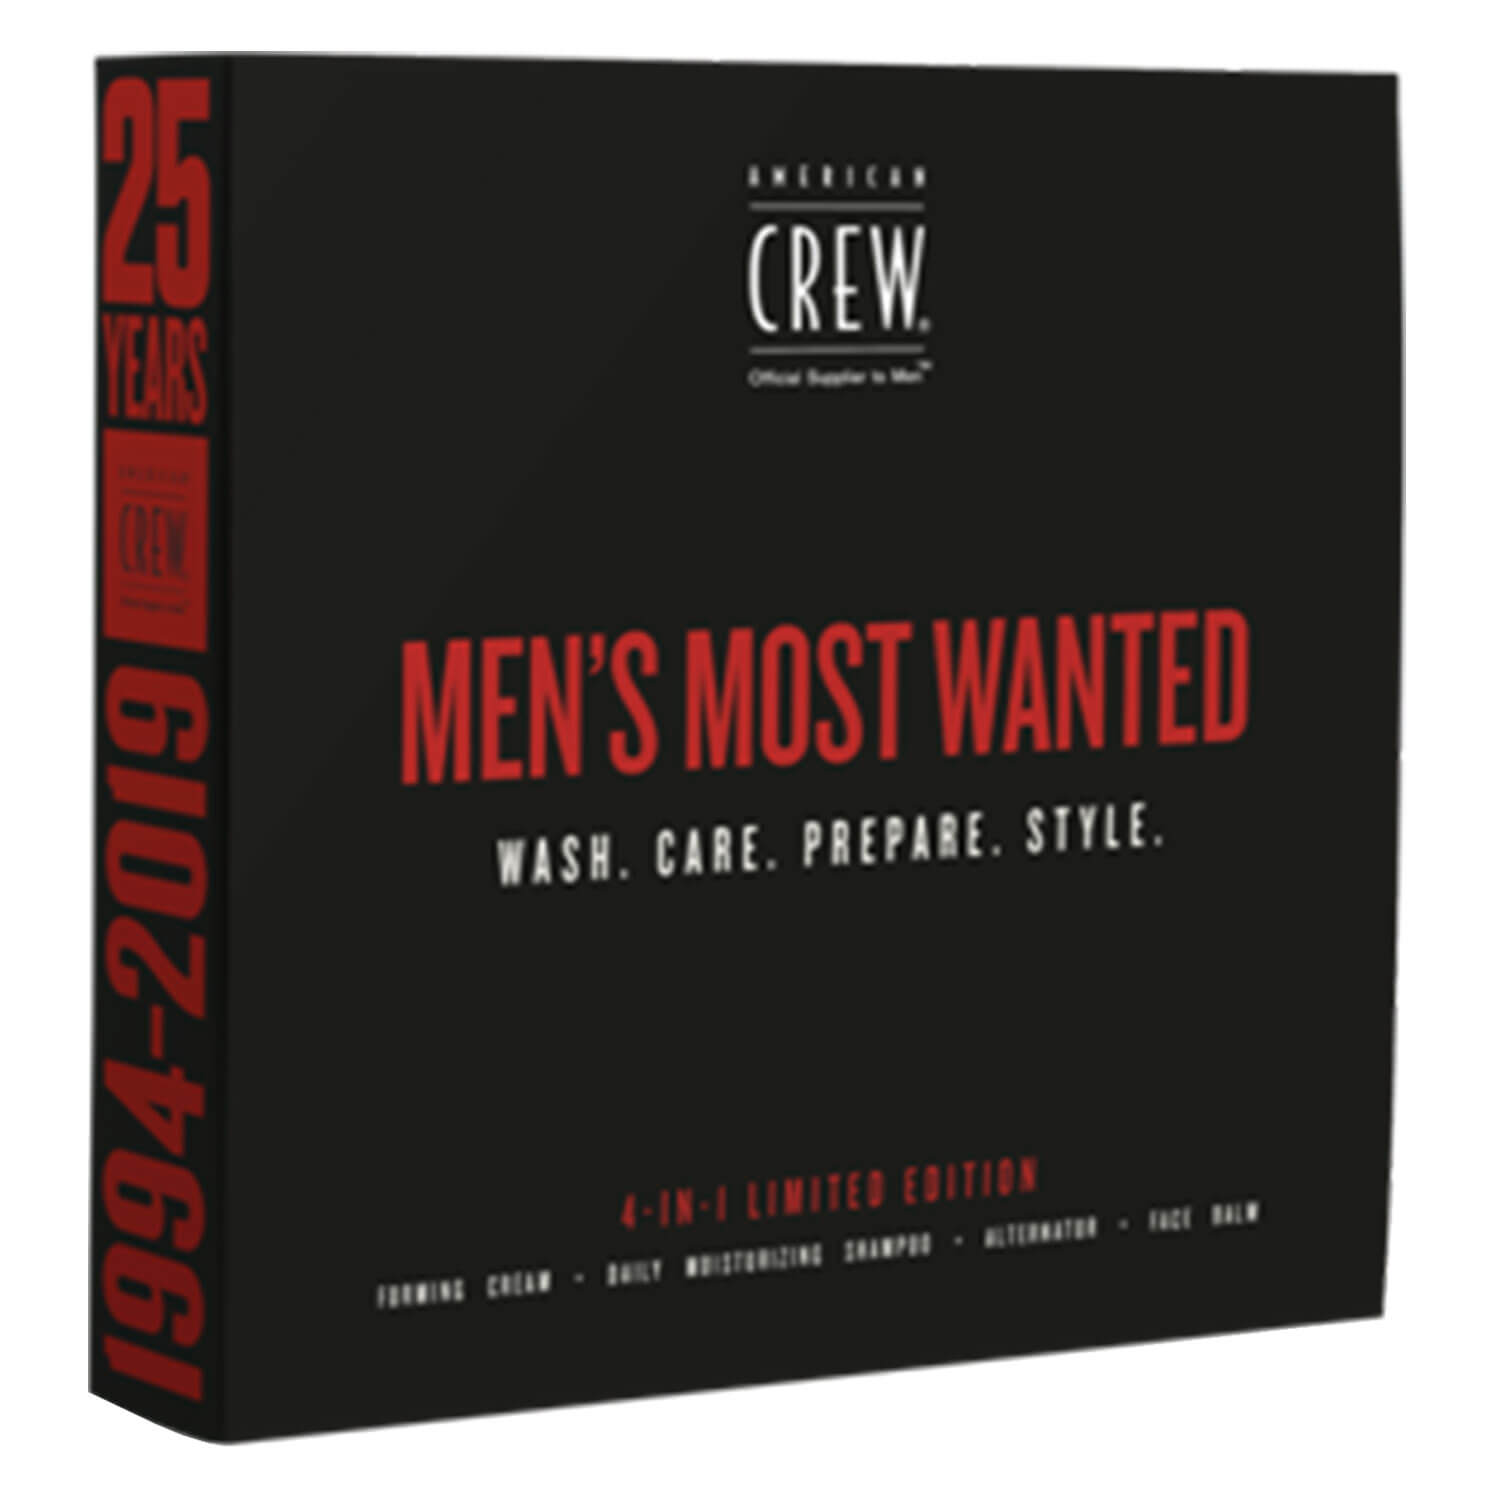 American Crew Specials - Men's Most Wanted Medium Hold Grooming Kit